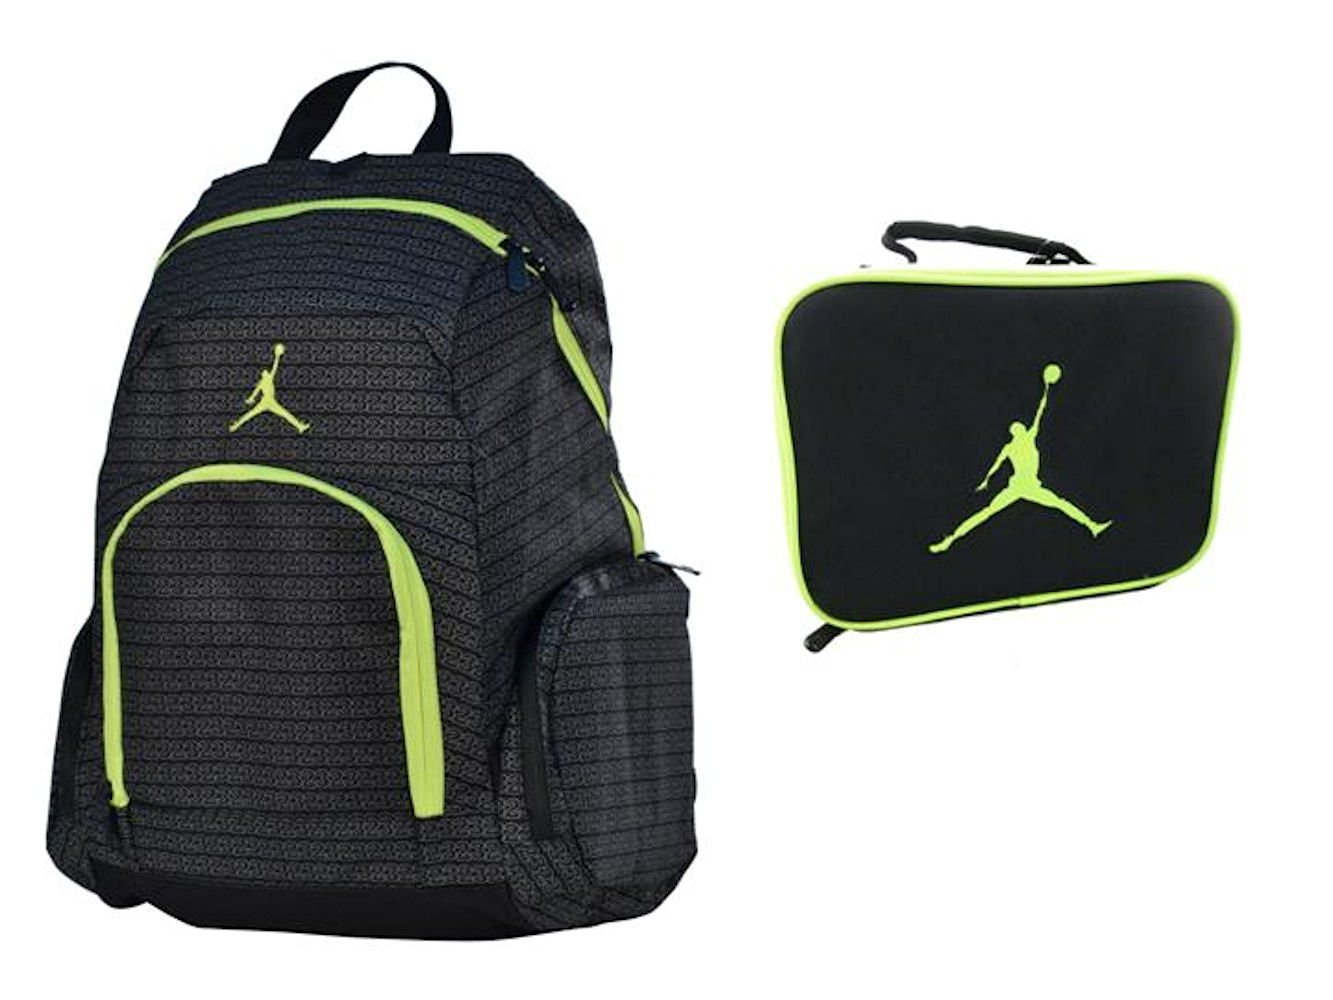 Nike Air Jordan Jumpman 23 Laptop Volt (Neon Green) Backpack & Lunch Tote + FREE Cell Phone Anti-Dust Plug